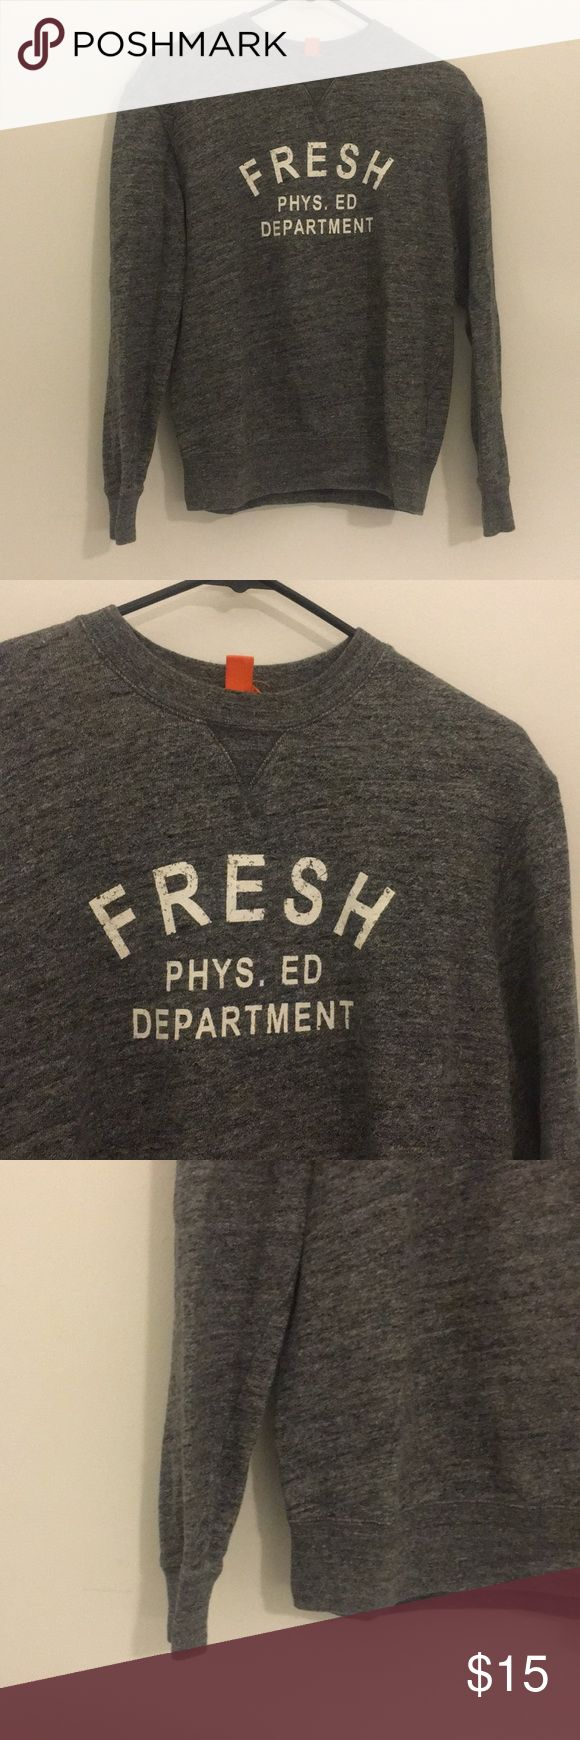 Joe Fresh Pullover Joe Fresh marled gray Crewneck pullover sweatshirt. Fresh Phys. Ed Department printed on the front. Looks great worn over a collared button down shirt with jeans. Size x-small. 100% cotton Joe Fresh Sweaters Crew & Scoop Necks